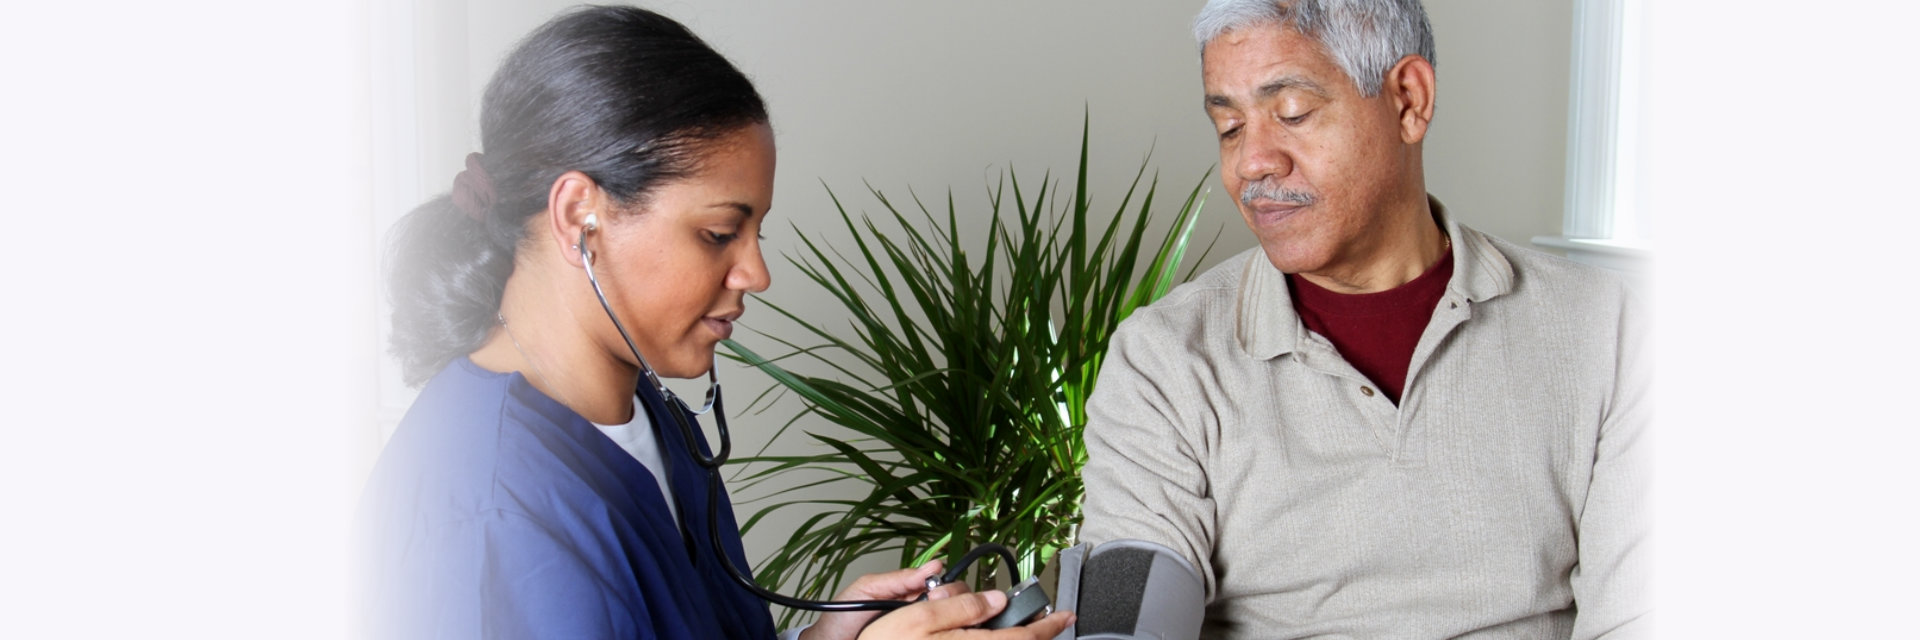 caregiver checking elderly man blood pressure